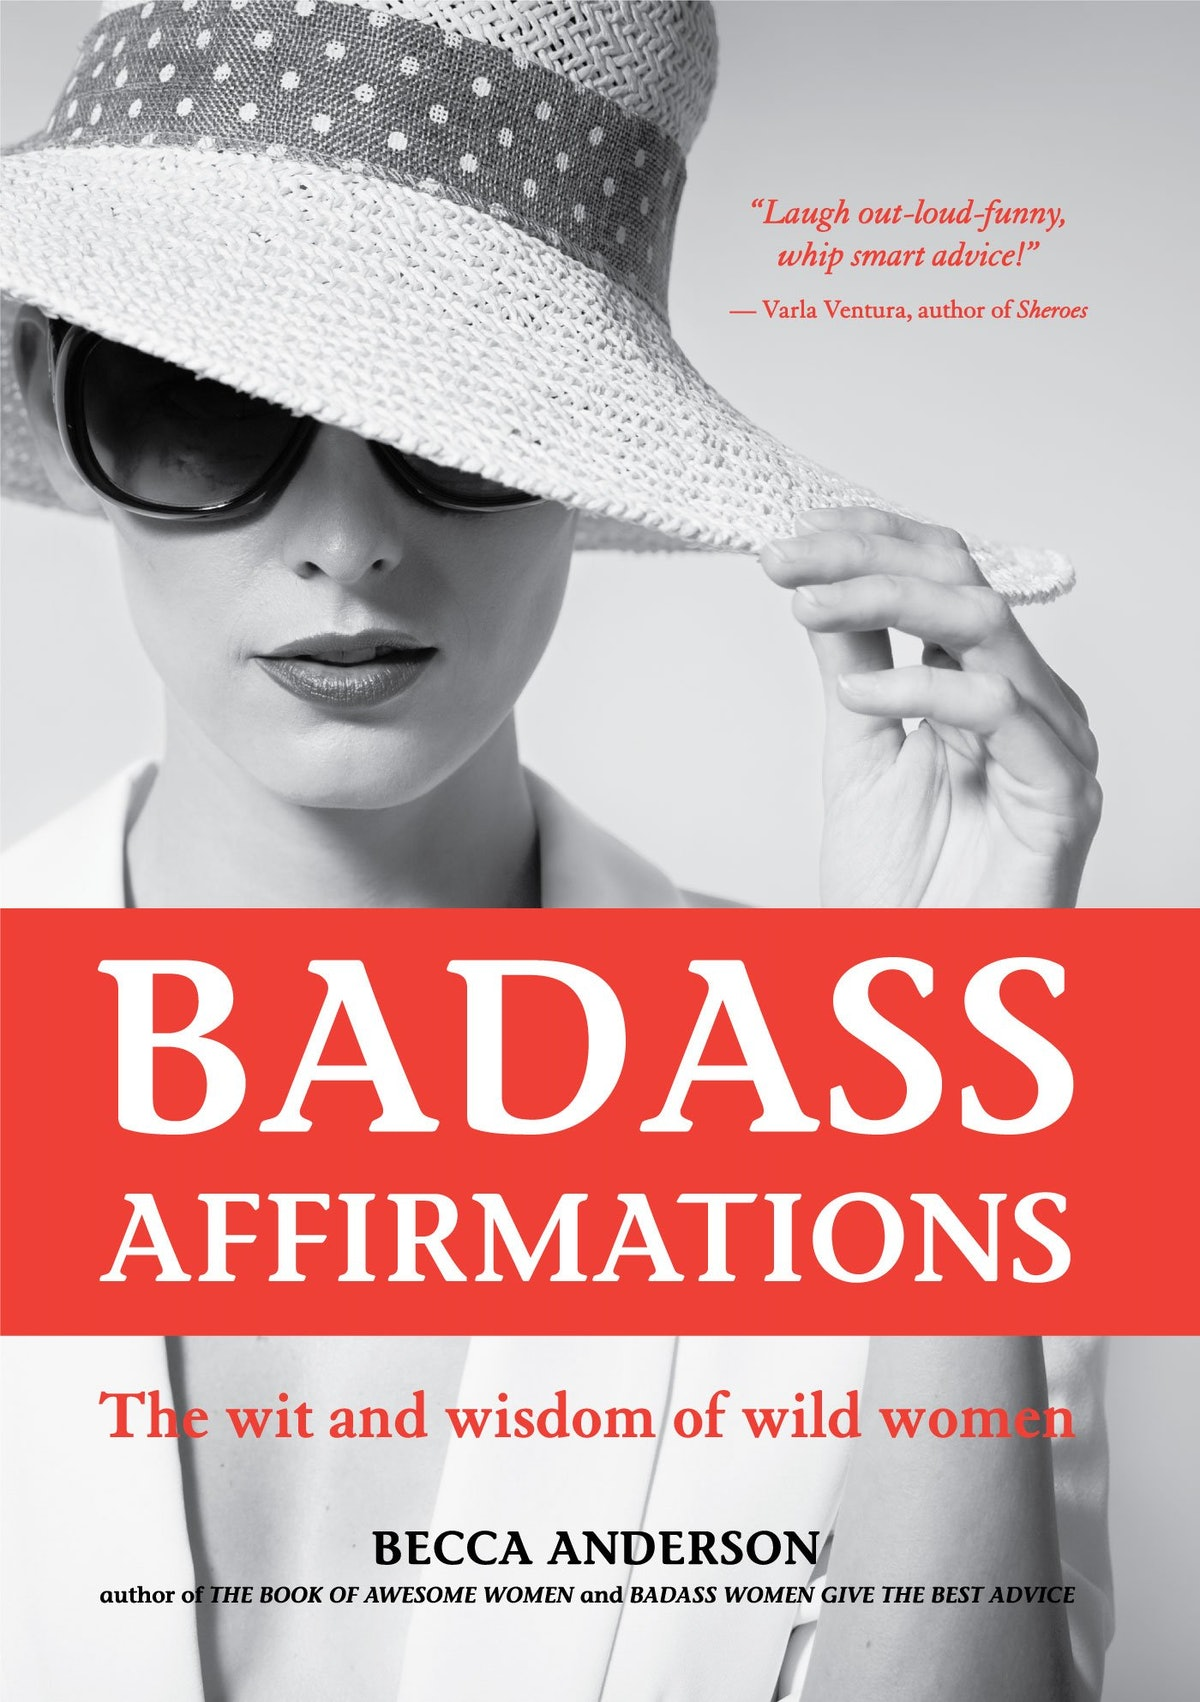 'Badass Affirmations: The Wit and Wisdom of Wild Women' by Becca Anderson